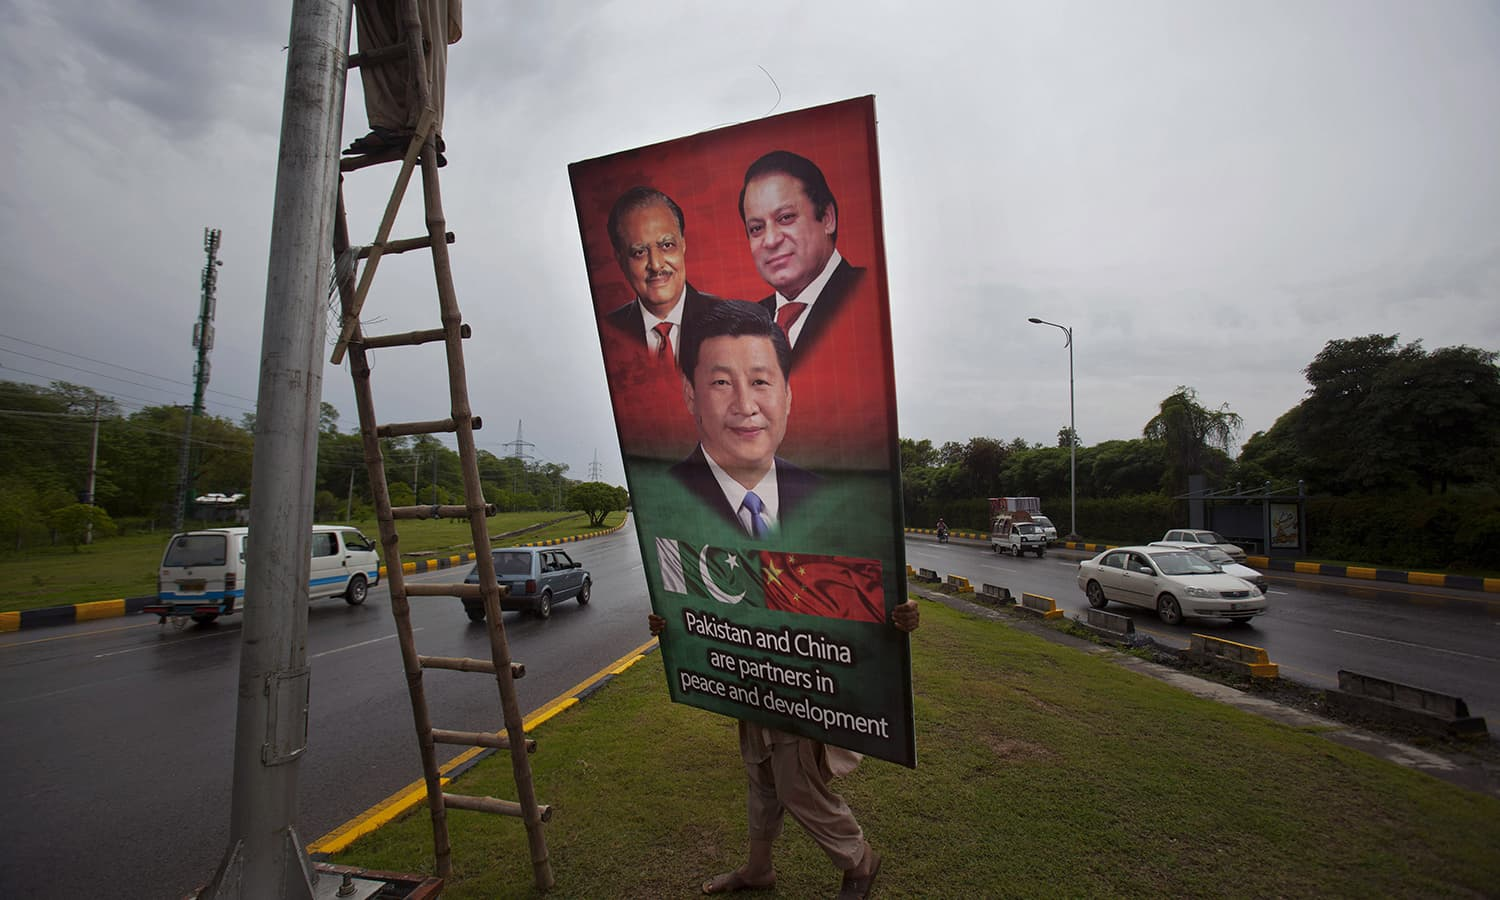 A Pakistani worker hangs a billboard showing pictures of Chinese President Xi Jinping, center, with Pakistan's President Mamnoon Hussain, right, and Prime Minister Nawaz Sharif welcoming Xi Jingping's to Islamabad. — AP